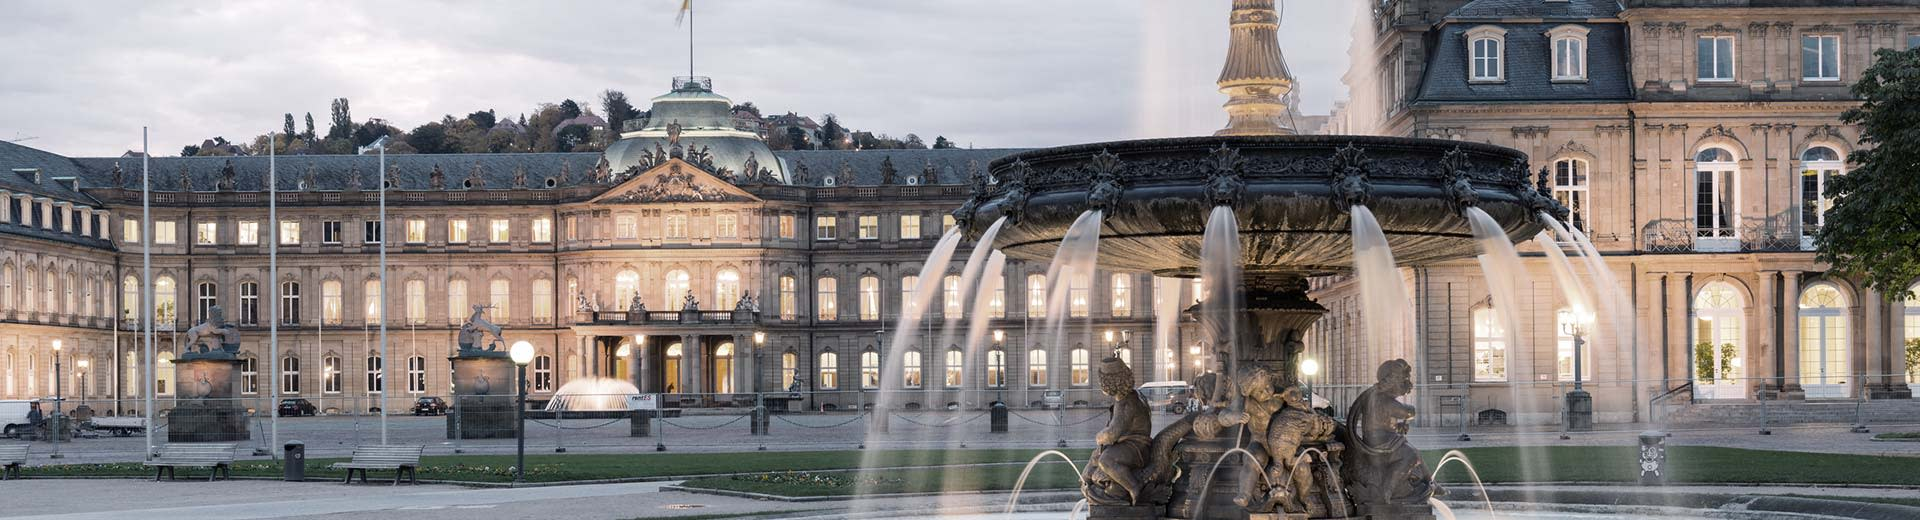 A beautiful fountain dominates the foreground, while behind stands a historic building in the half-light